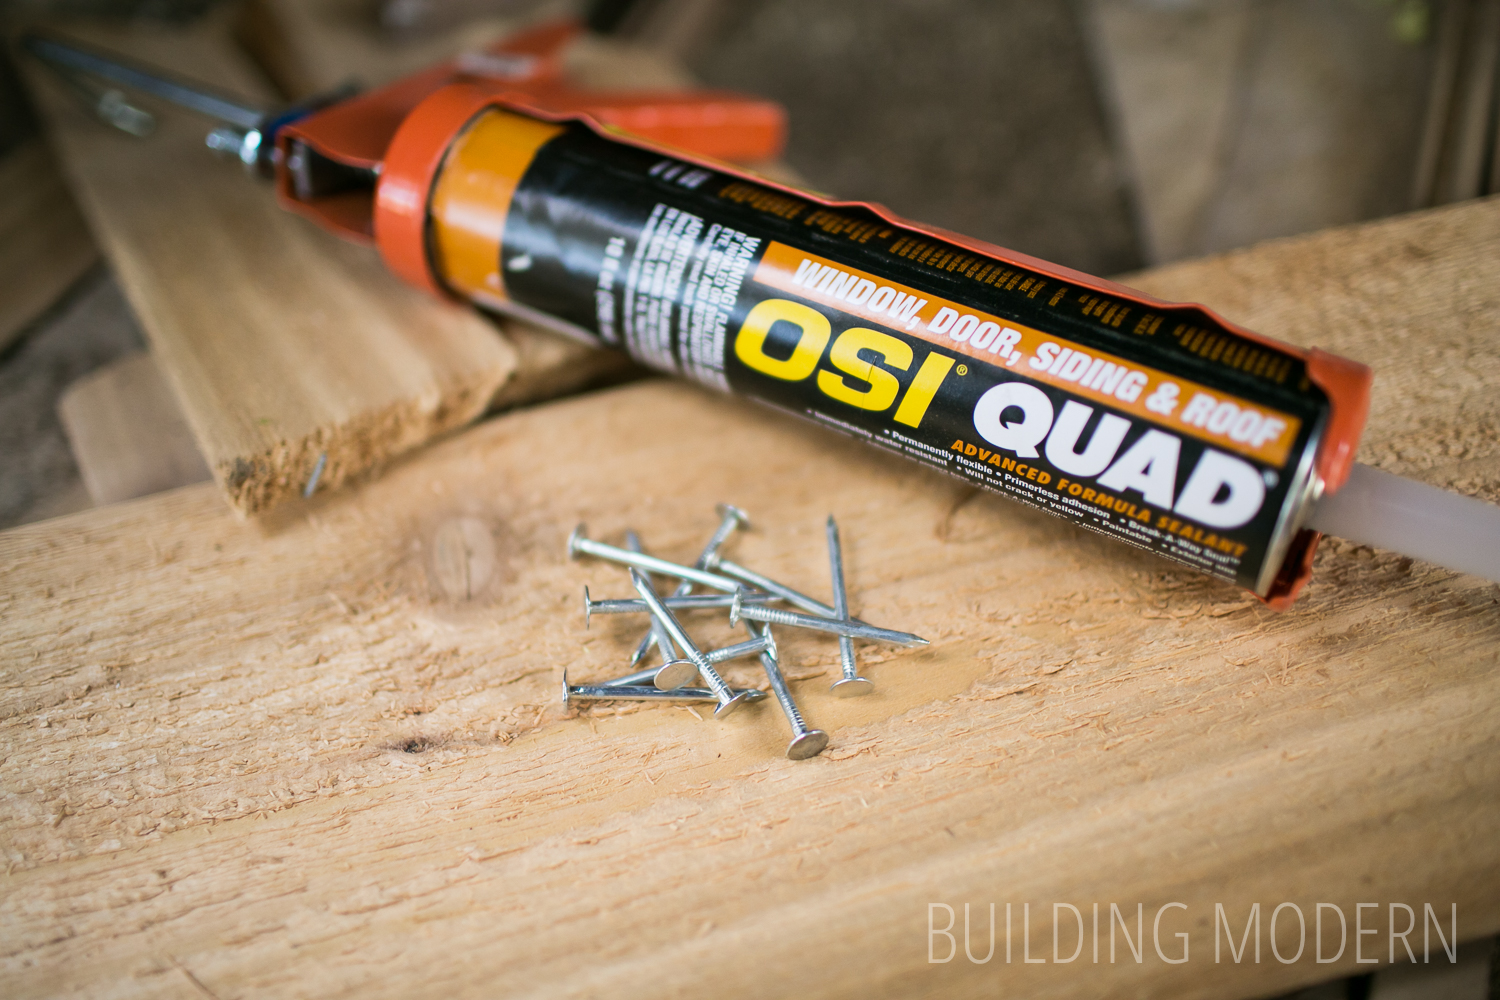 Using OSI Quad exterior caulk